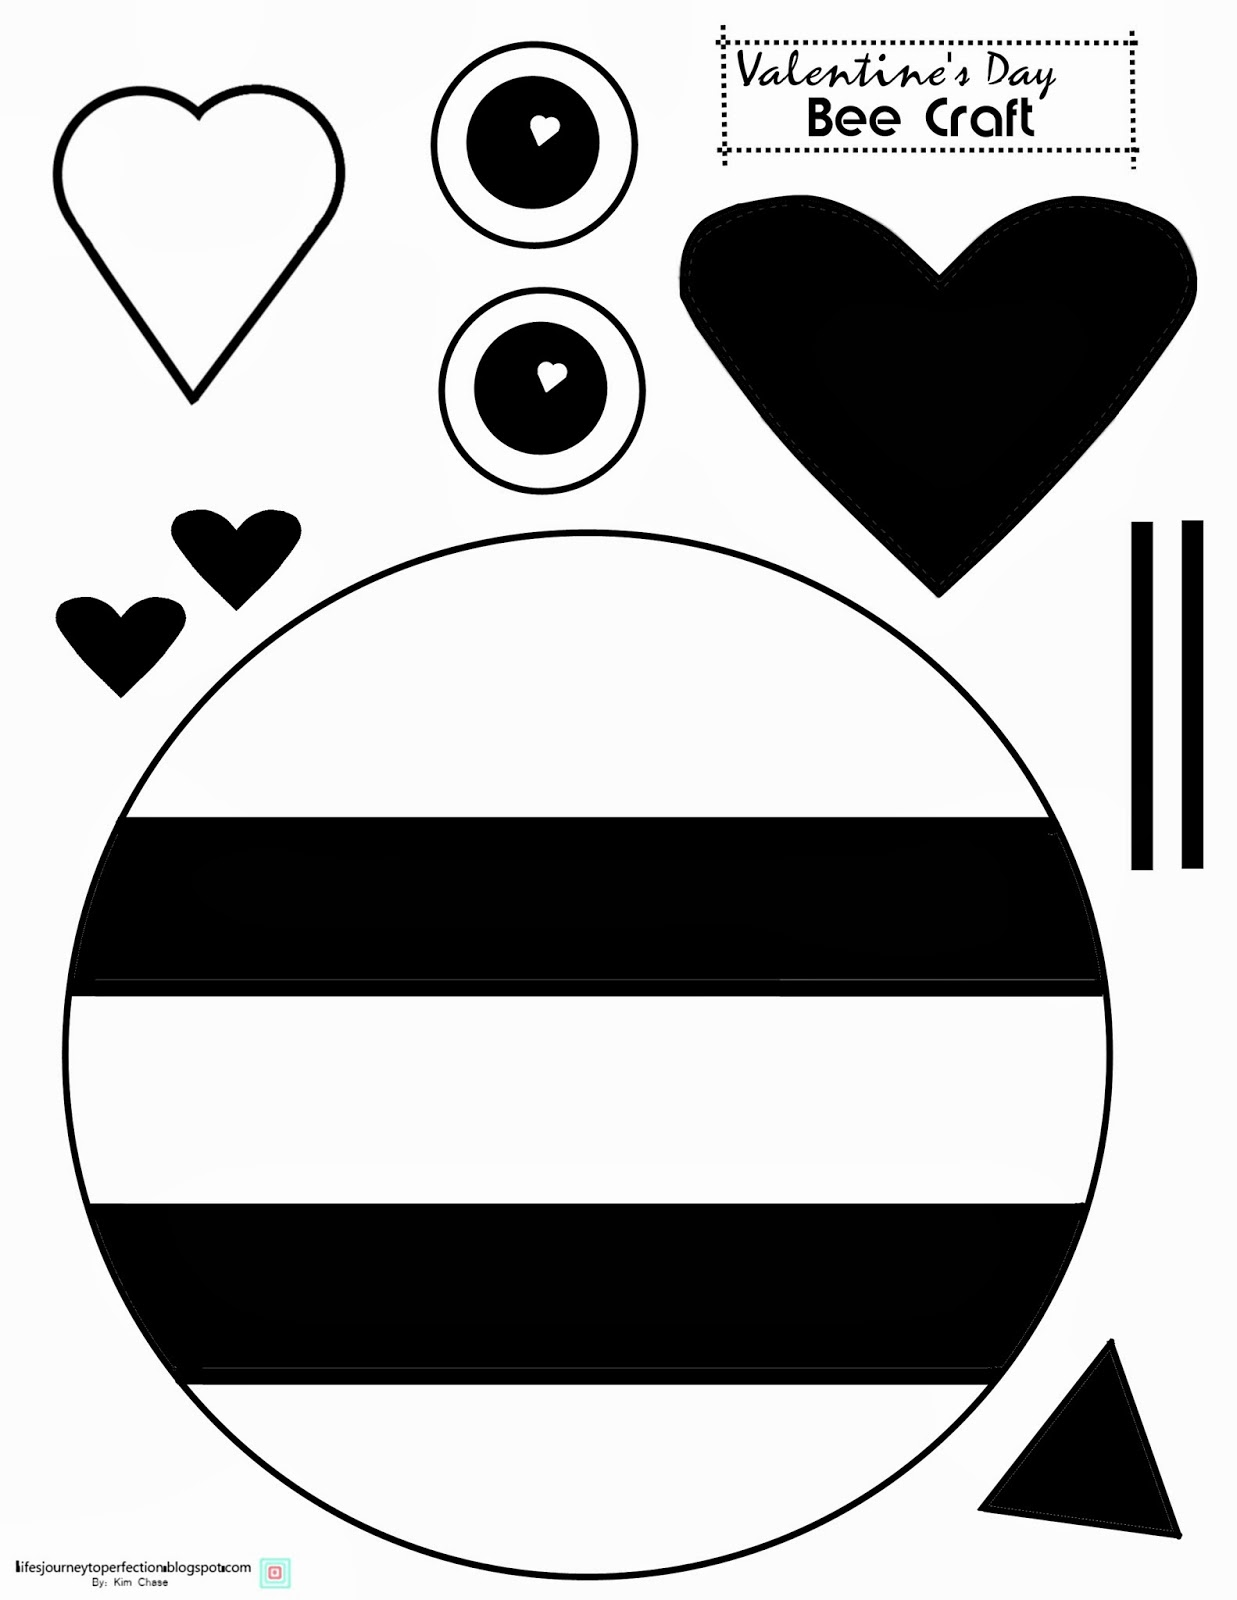 life 39 s journey to perfection valentine 39 s day bee craft printable. Black Bedroom Furniture Sets. Home Design Ideas